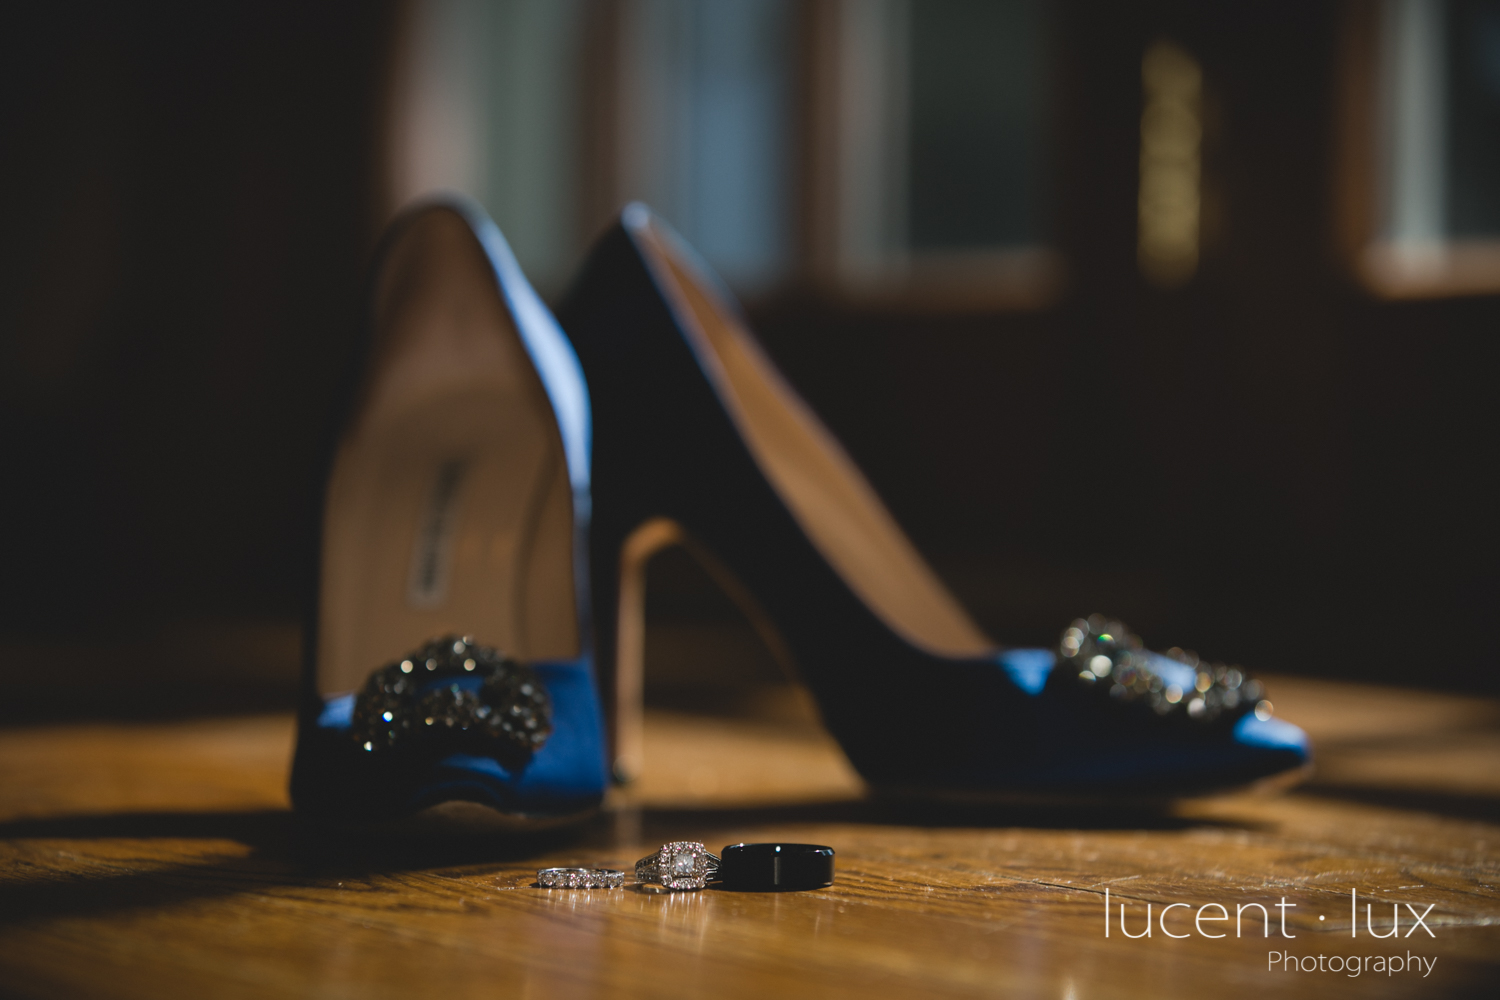 Harford_County_Courthouse_Bel_Air_Maryland_Wedding_Photographer_Maryland_Wedding_Photography-101.jpg